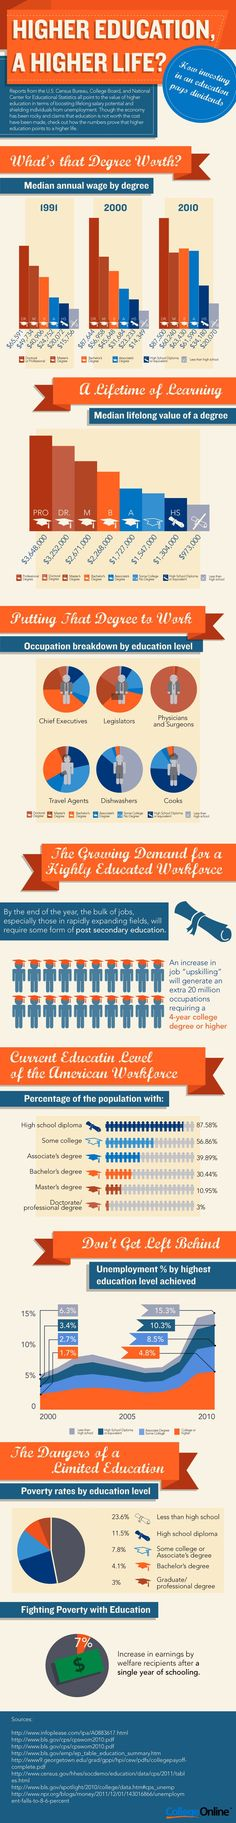 Amidst lower than average post-graduate employment, increased government scrutiny, and an overall weak economy, higher education has been a largely talked about issue in America. Individuals, political figures, and journalists weigh in about the country's educational system from high school preparedness, student debt, and even question the value of a college degree.